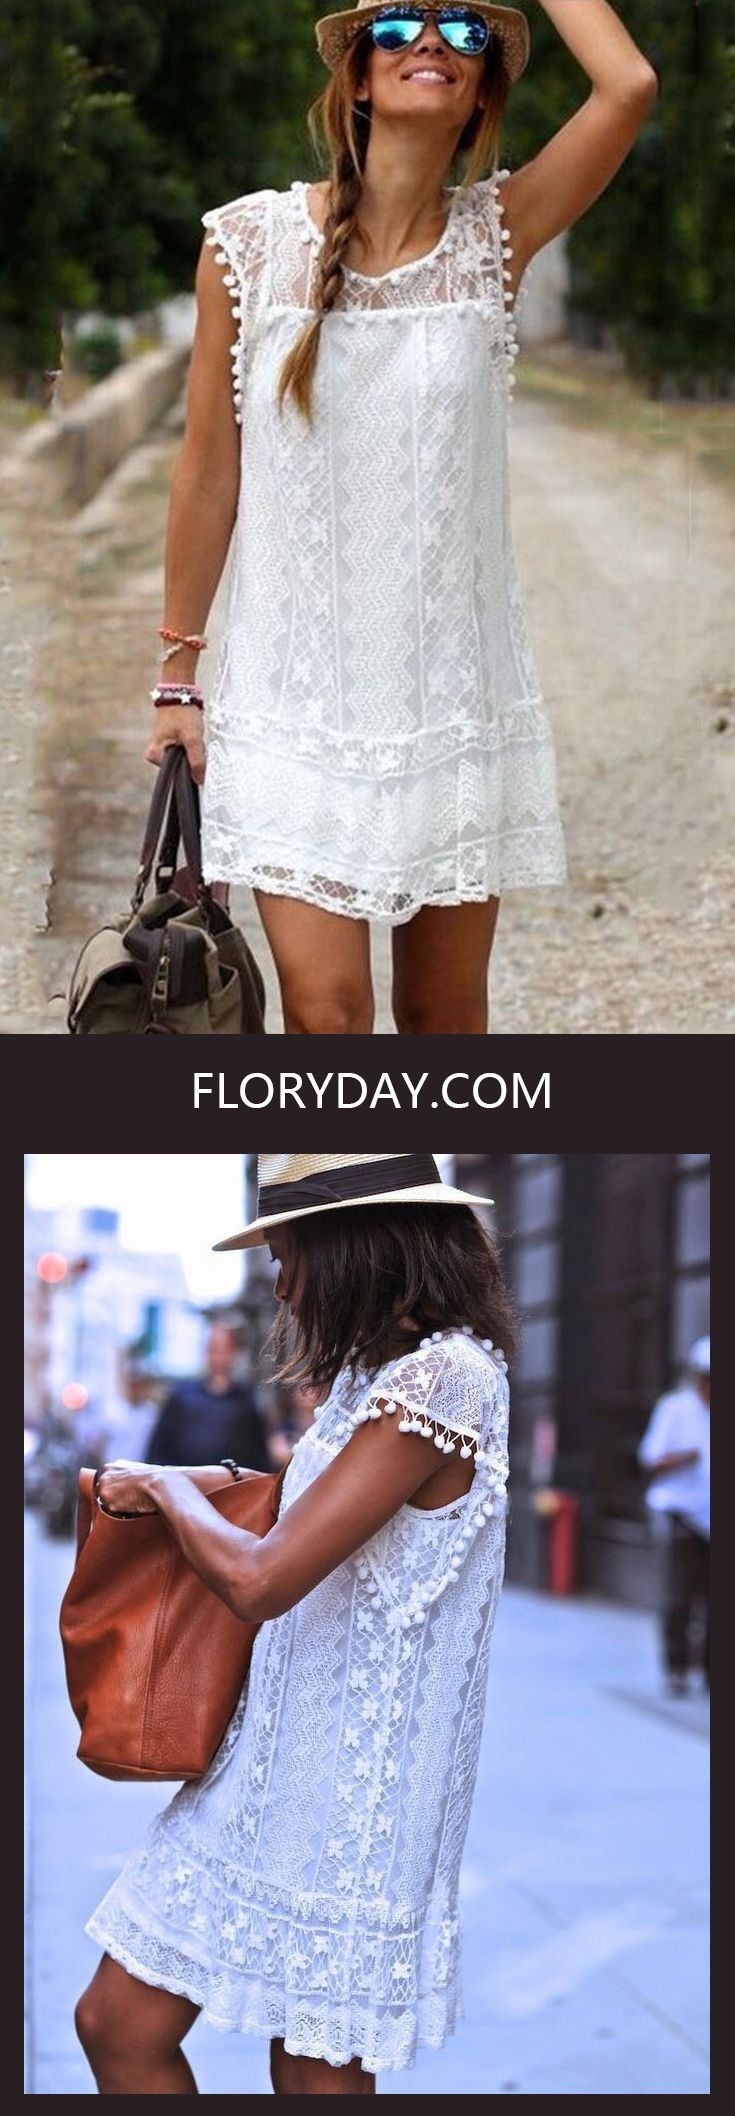 This Lace and Vintage dress is Coachella feels. Perfect for any outdoor events! Pair it up with your leather bag and favorite hat!